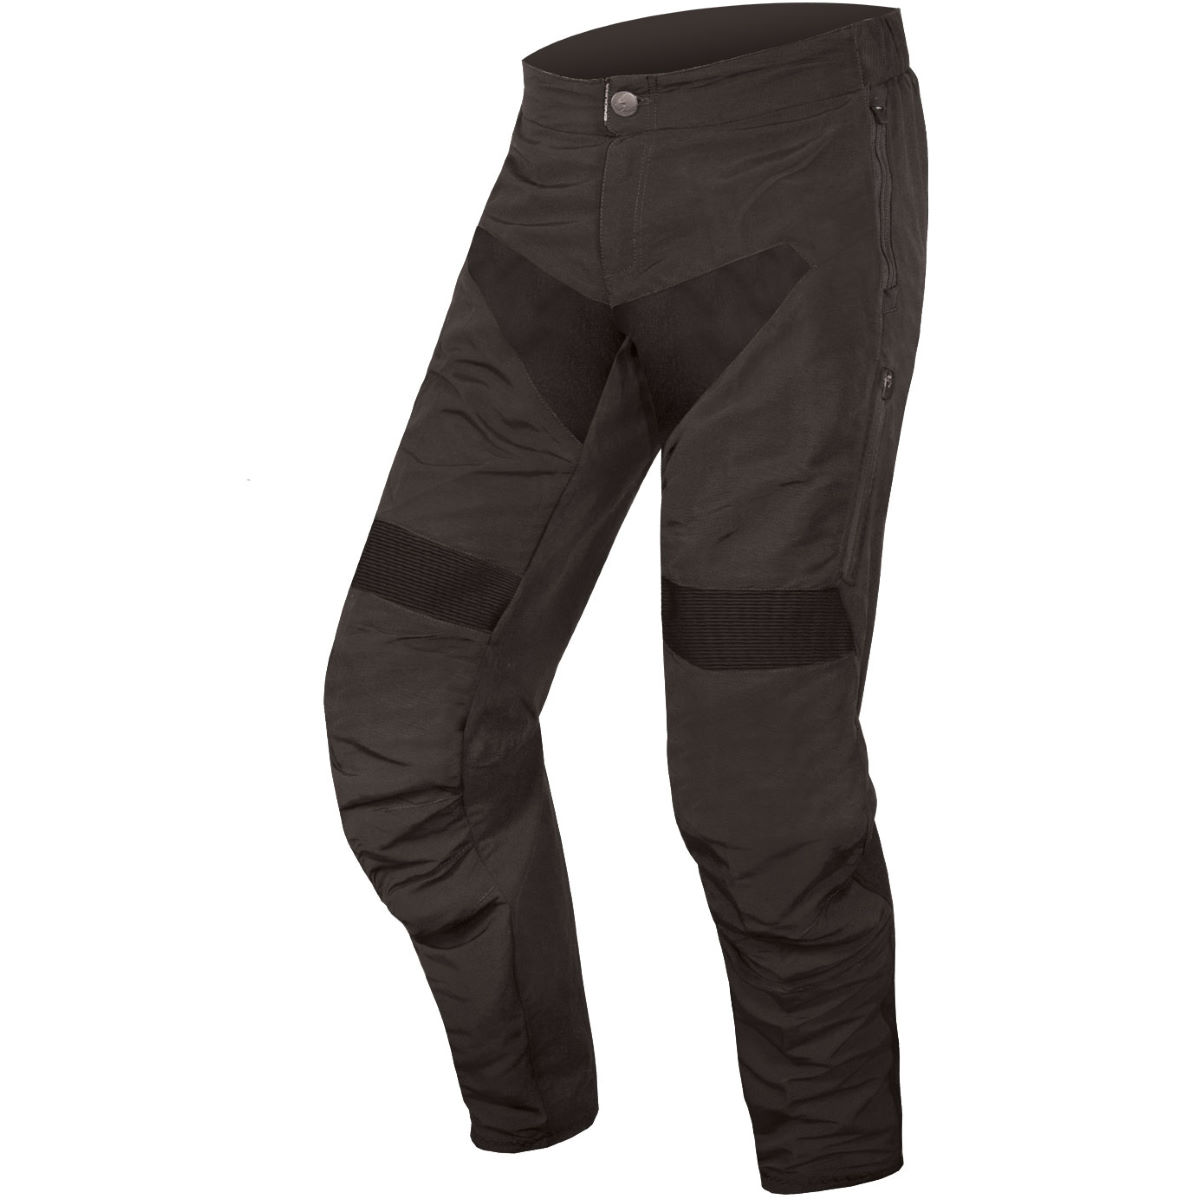 Endura SingleTrack Trousers - M Black | Cycling Pants